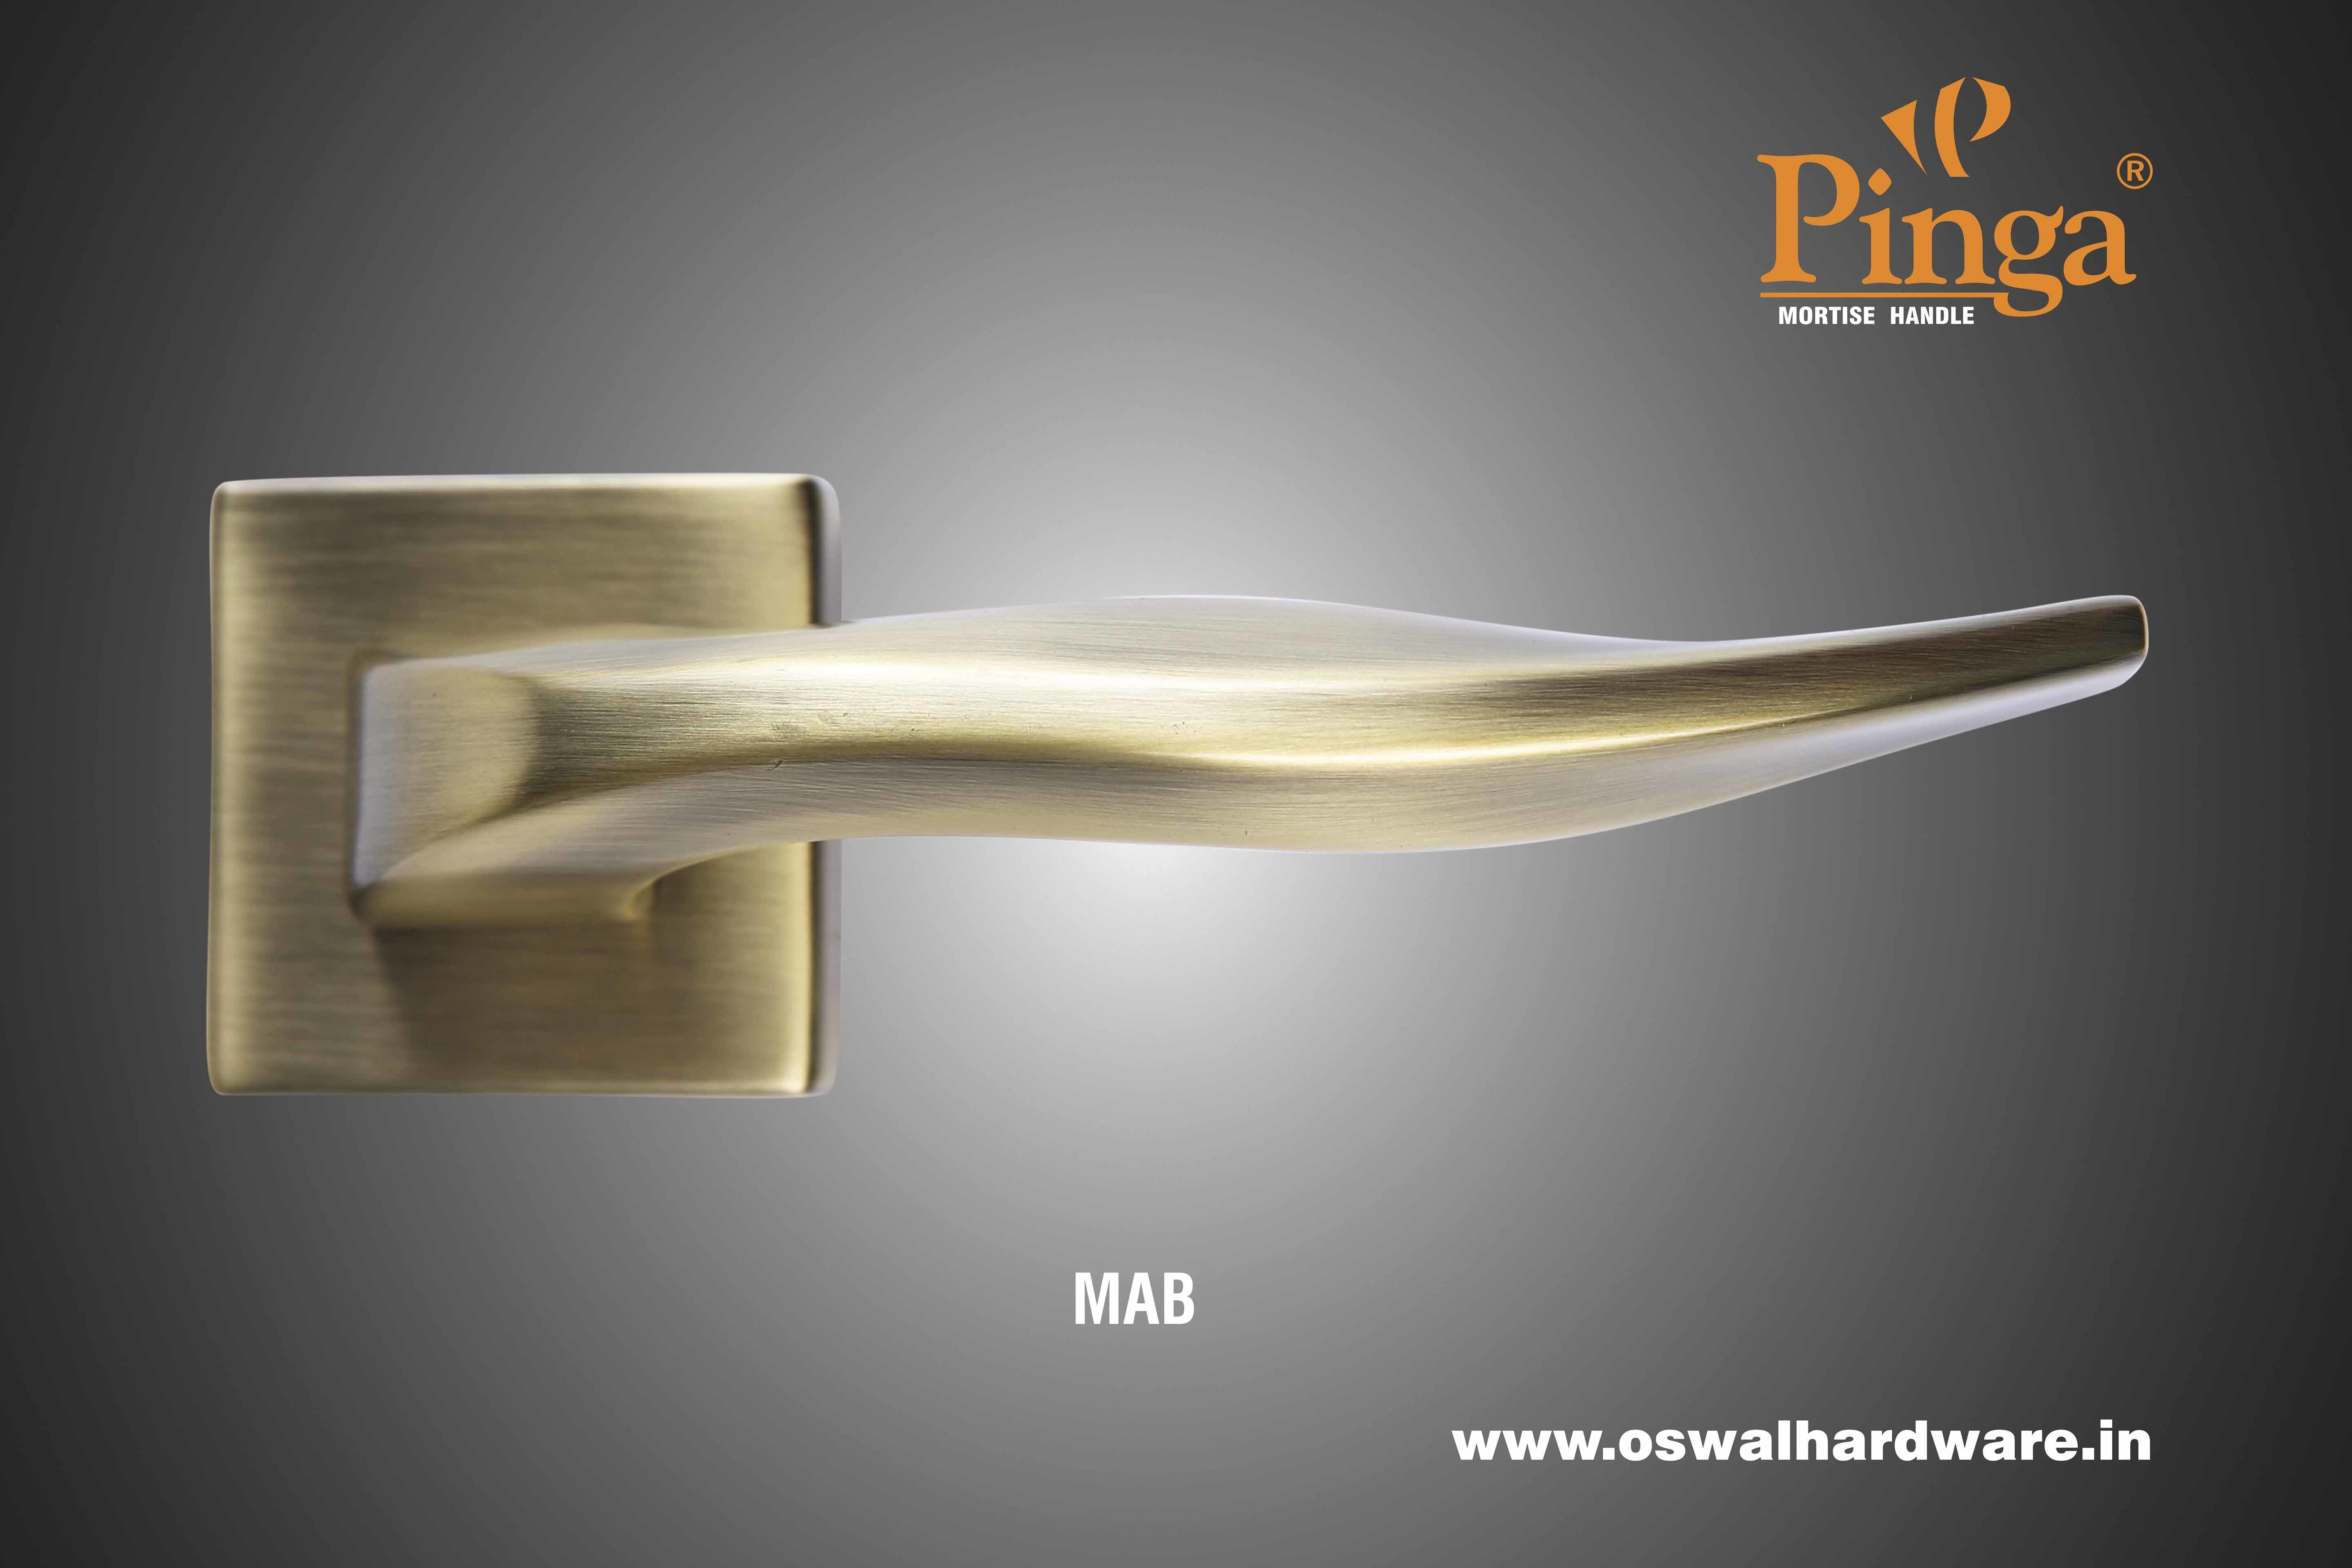 168319 Mortise Handle